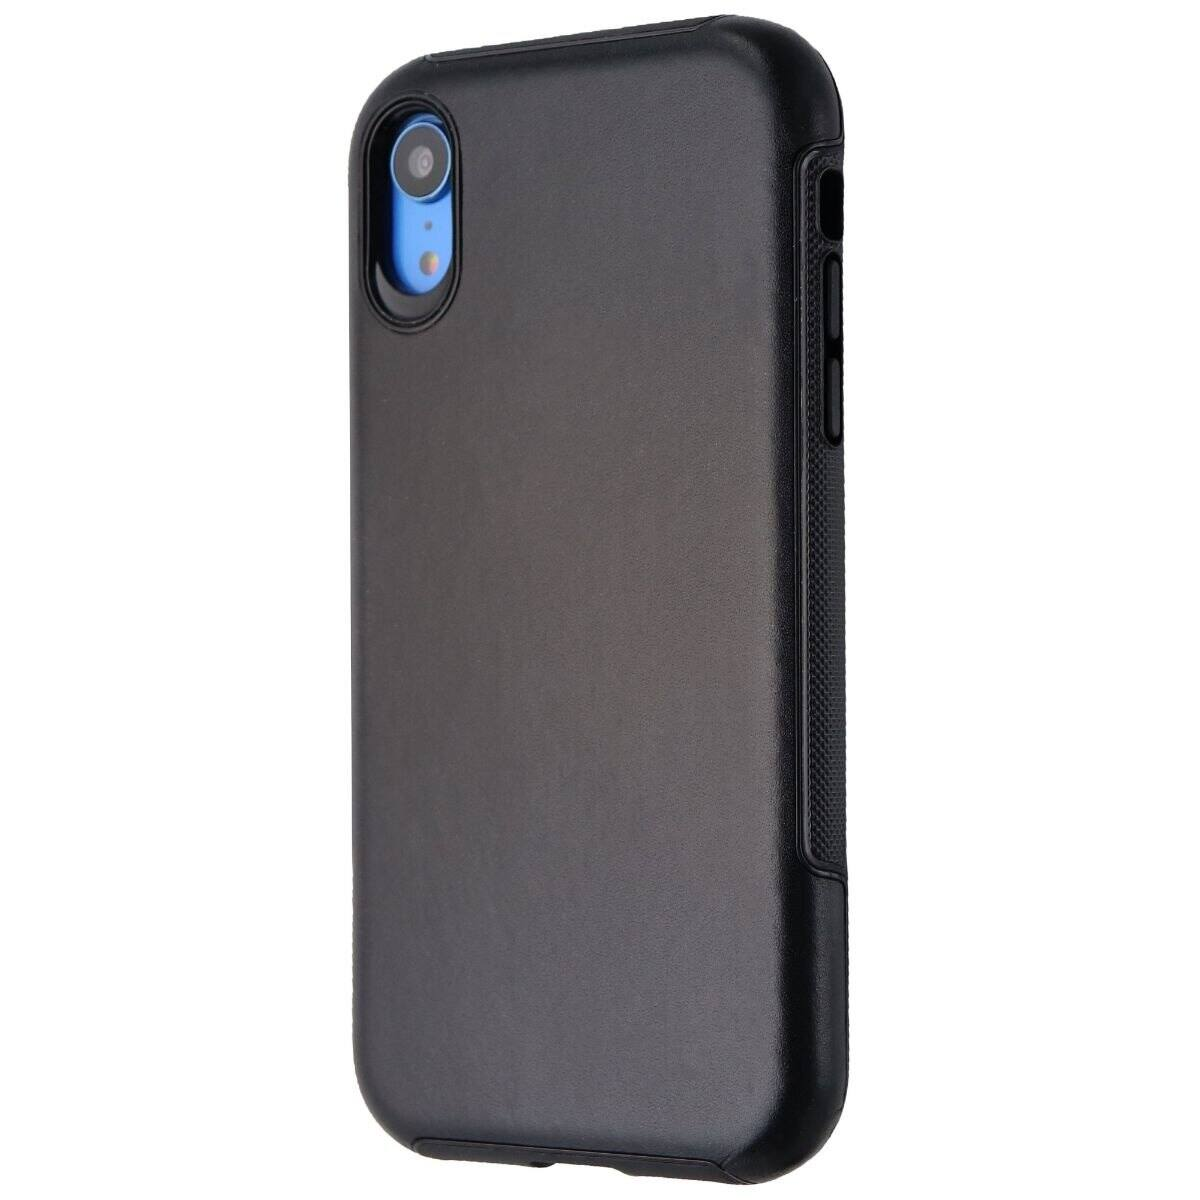 Verizon Genuine Leather Case for iPhone XR for $9.97 + Free Shipping